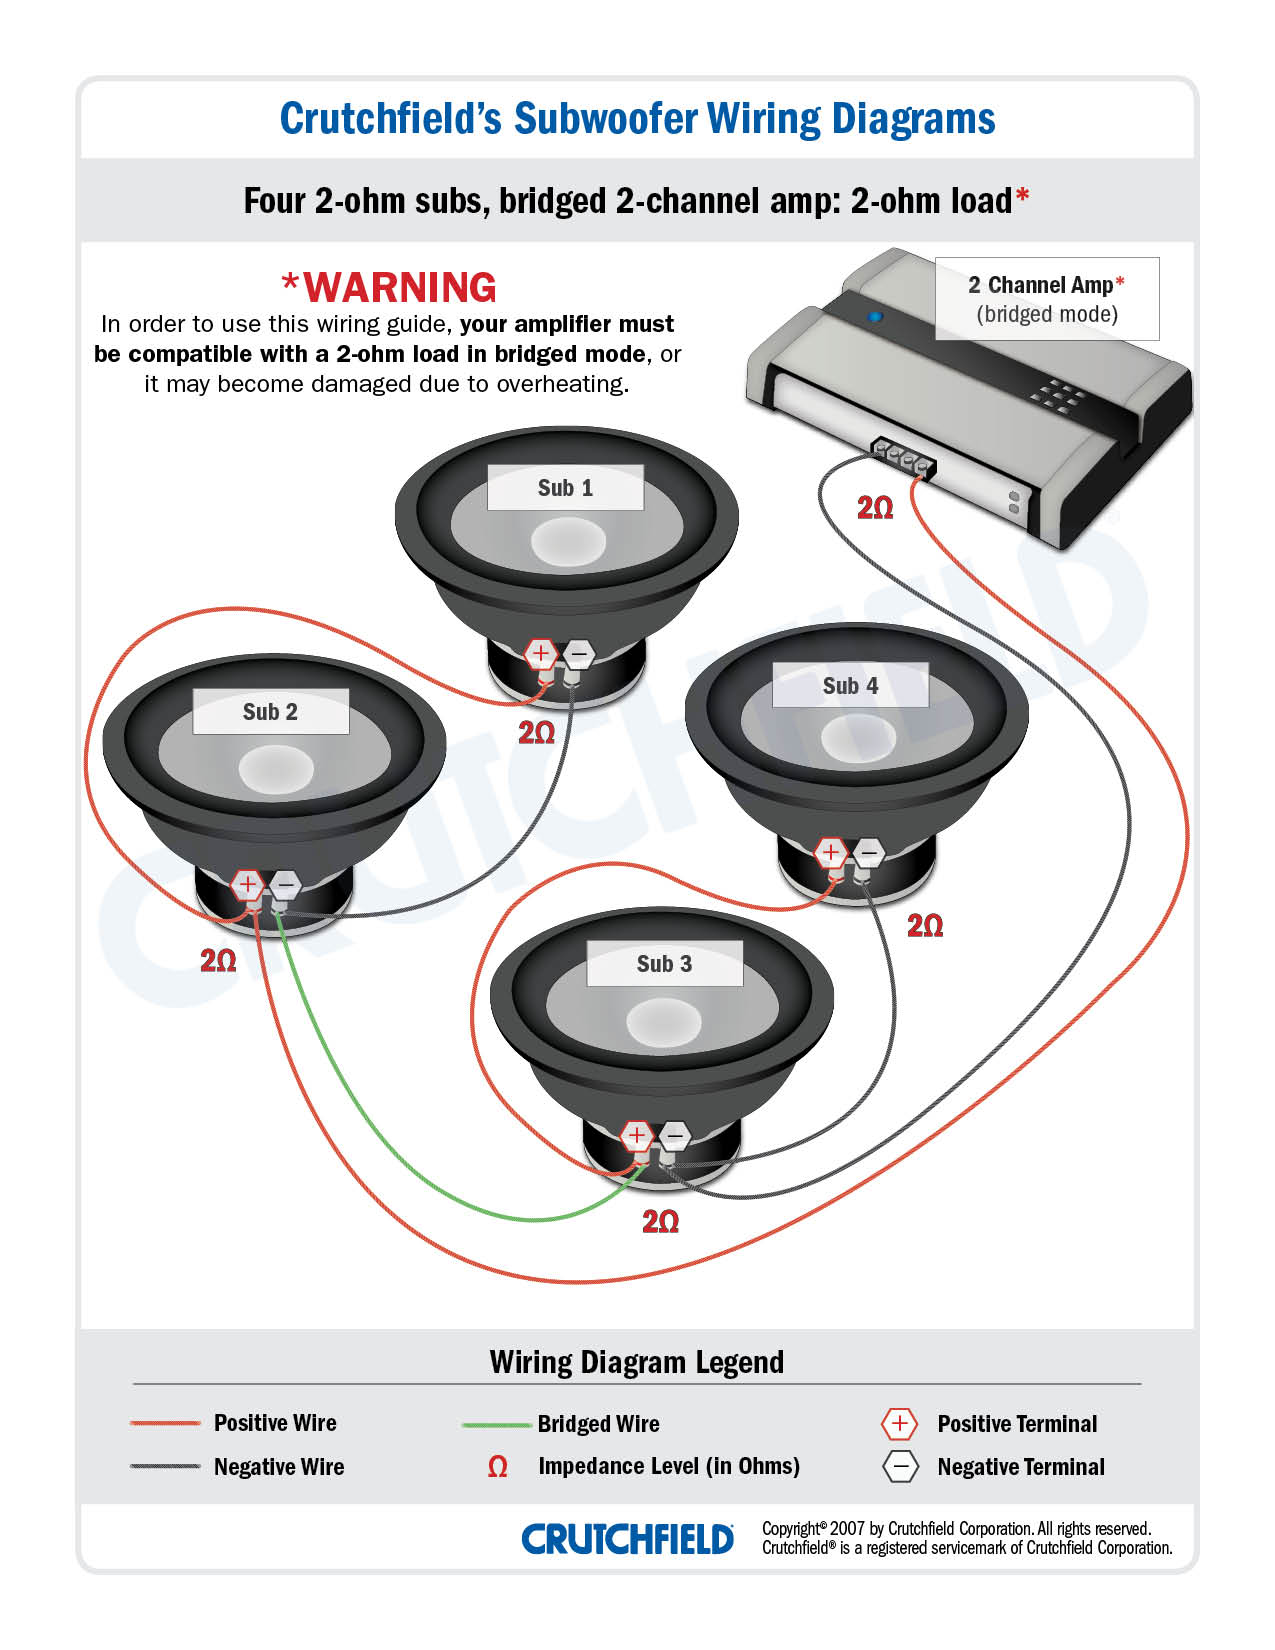 subwoofer wiring diagrams how many subwoofers do you have